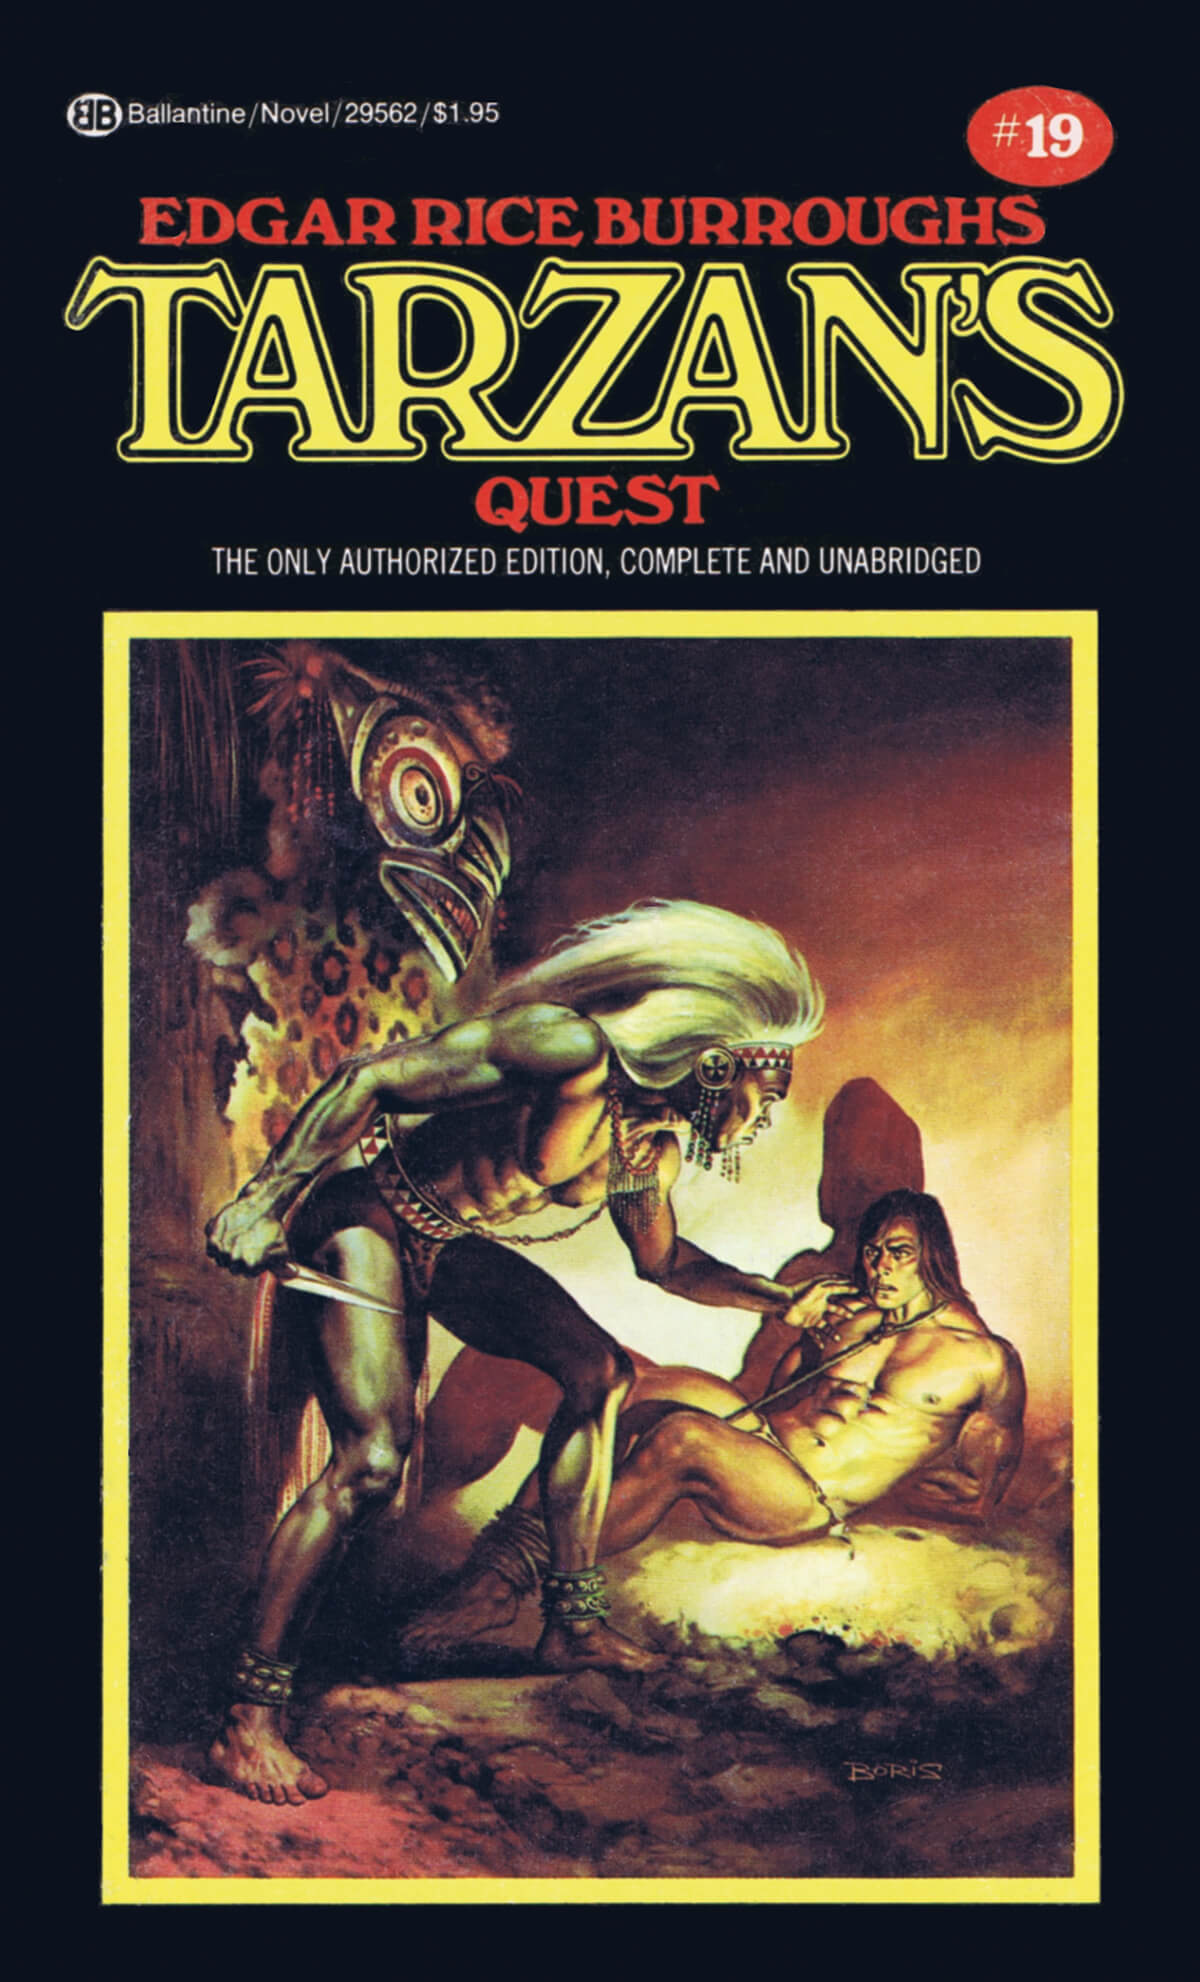 Boris Vallejo 19 Tarzans Quest Cover